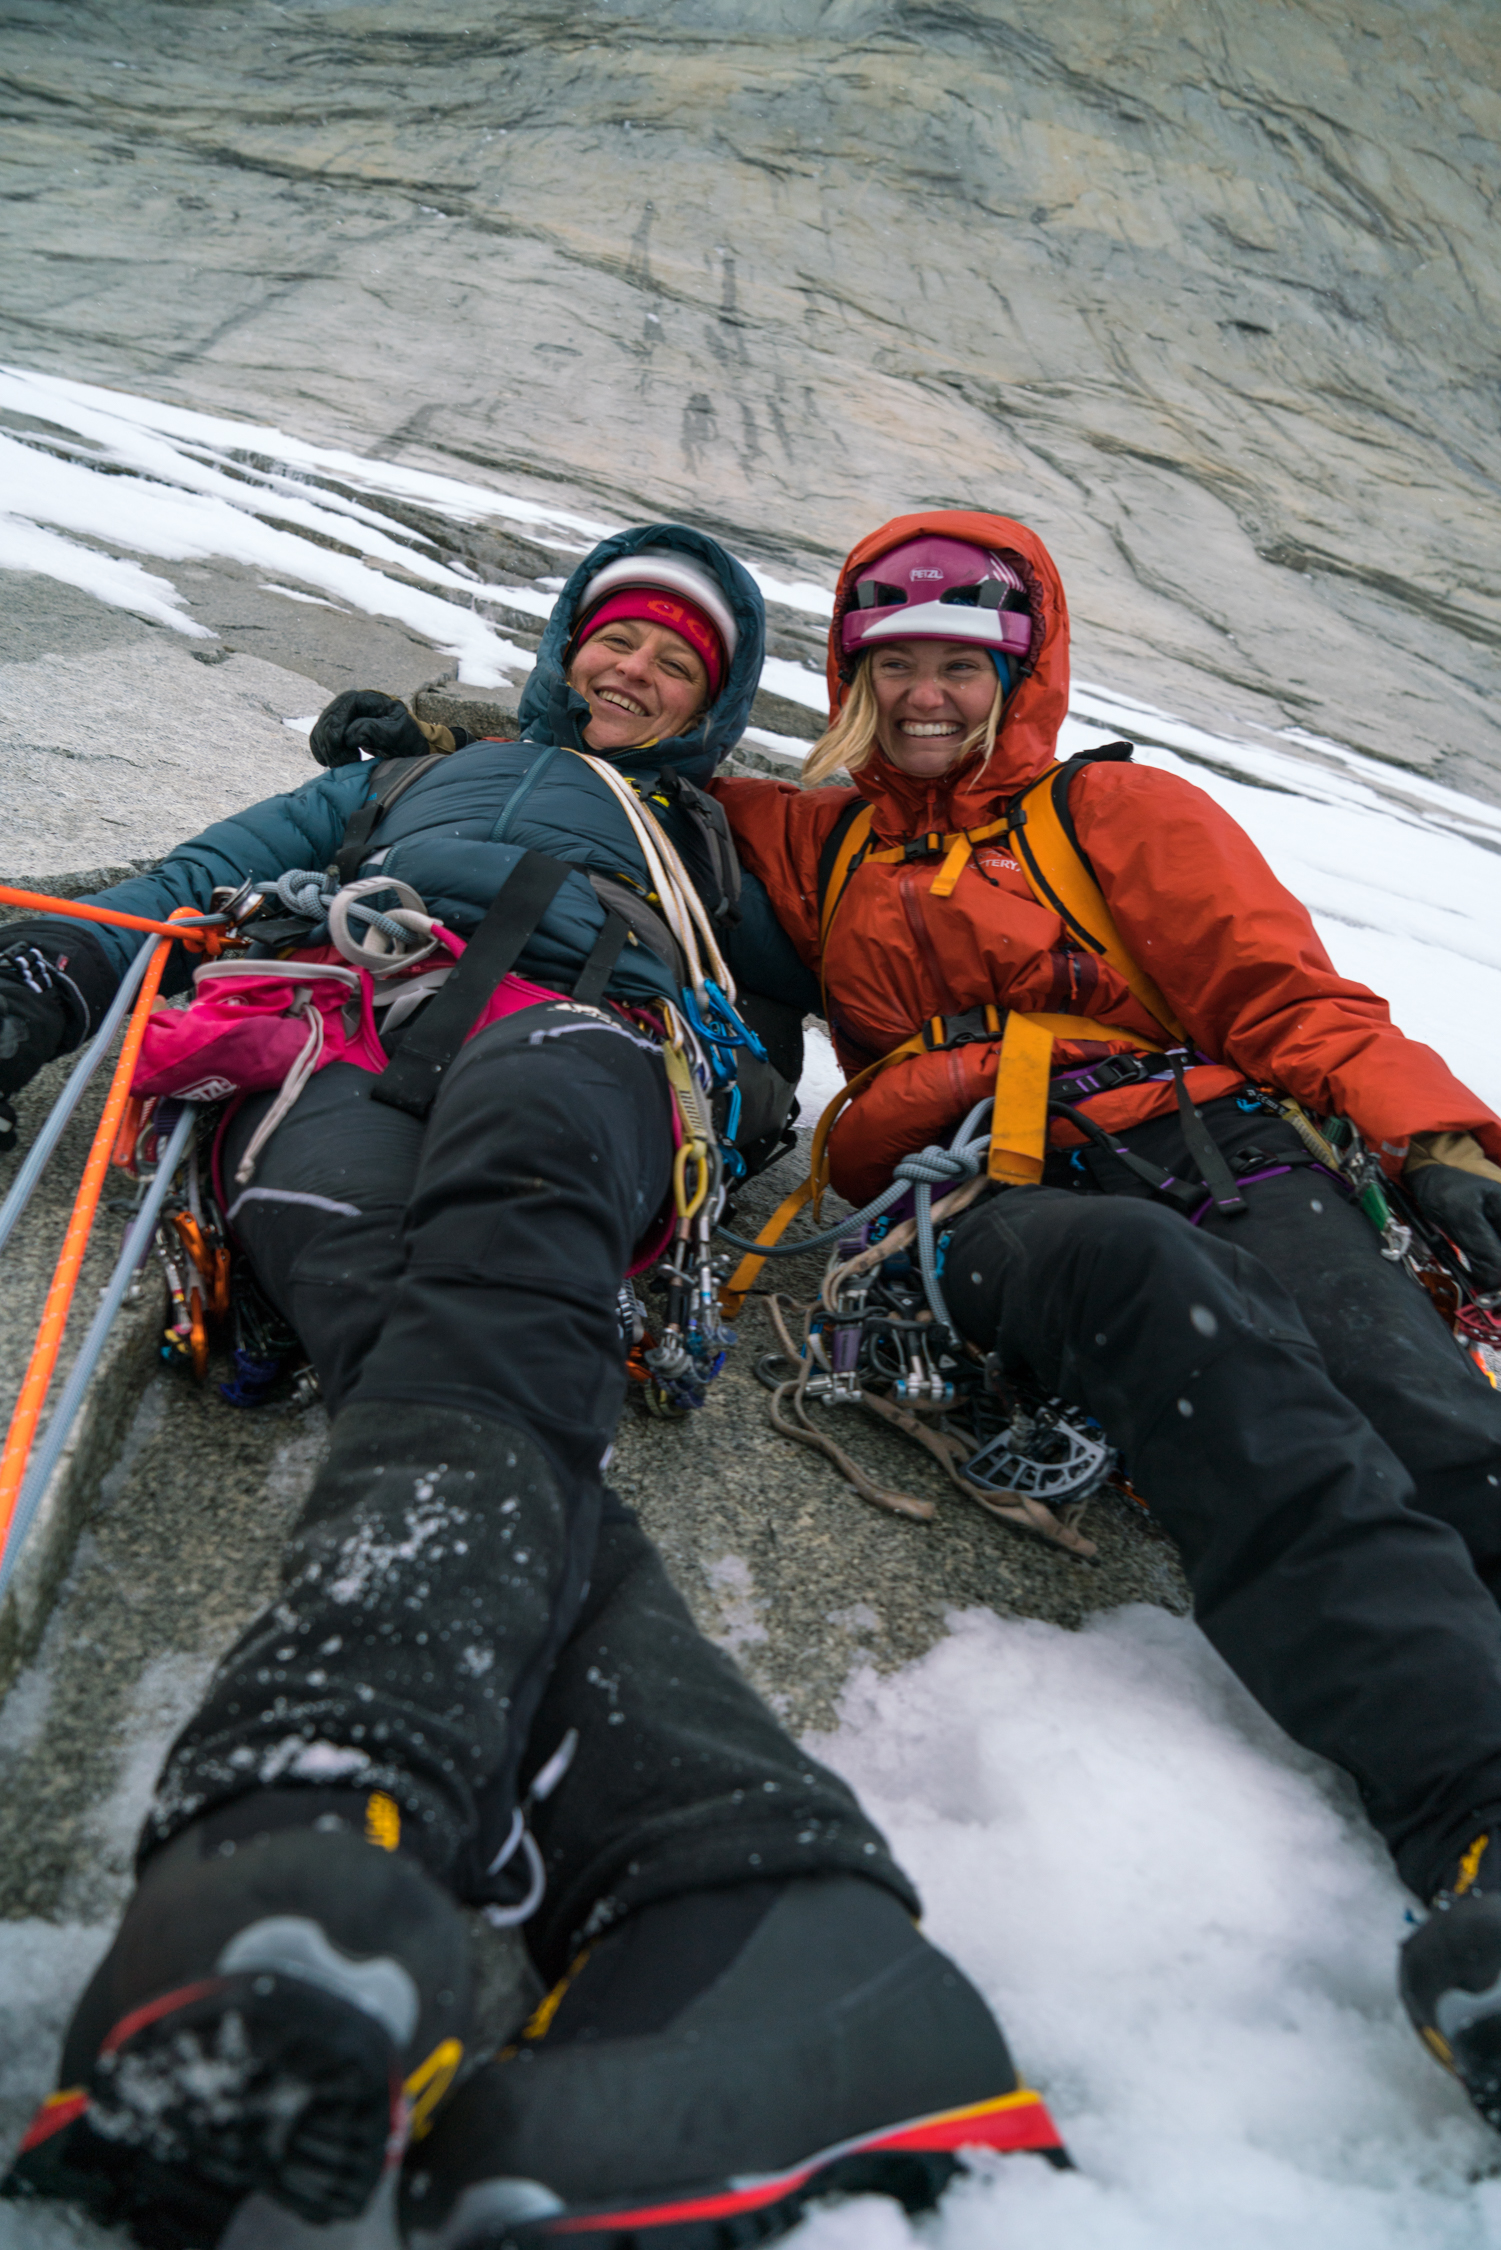 Smith-Gobat and Harrington manage to keep smiling in spite of the icy slabs on the lower part of the route that dashed all hope for making a complete free ascent. [Photo] Drew Smith